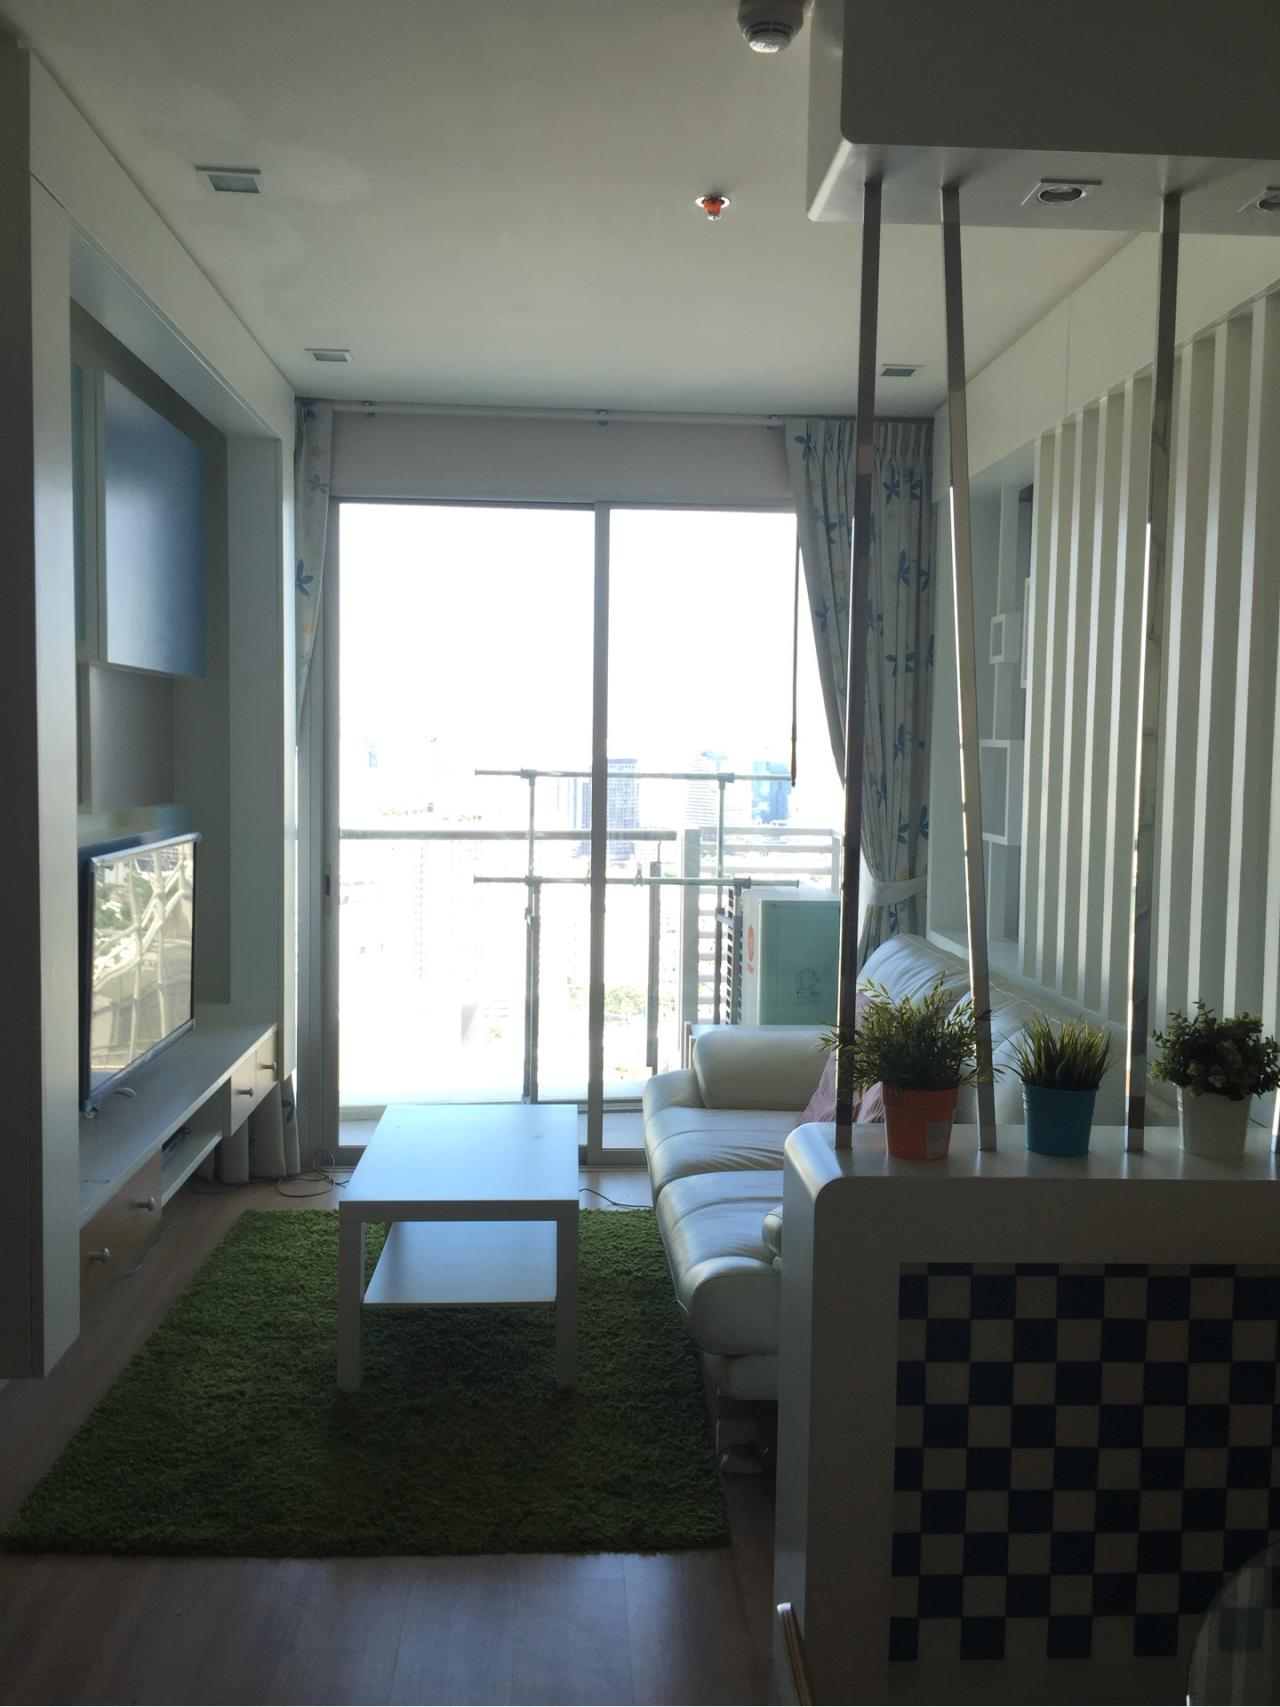 Quality Life Property Agency's For Rent  ! ! [ SKY WALK ] 2 BR 60 SQ. M. NICE DECORATION 6